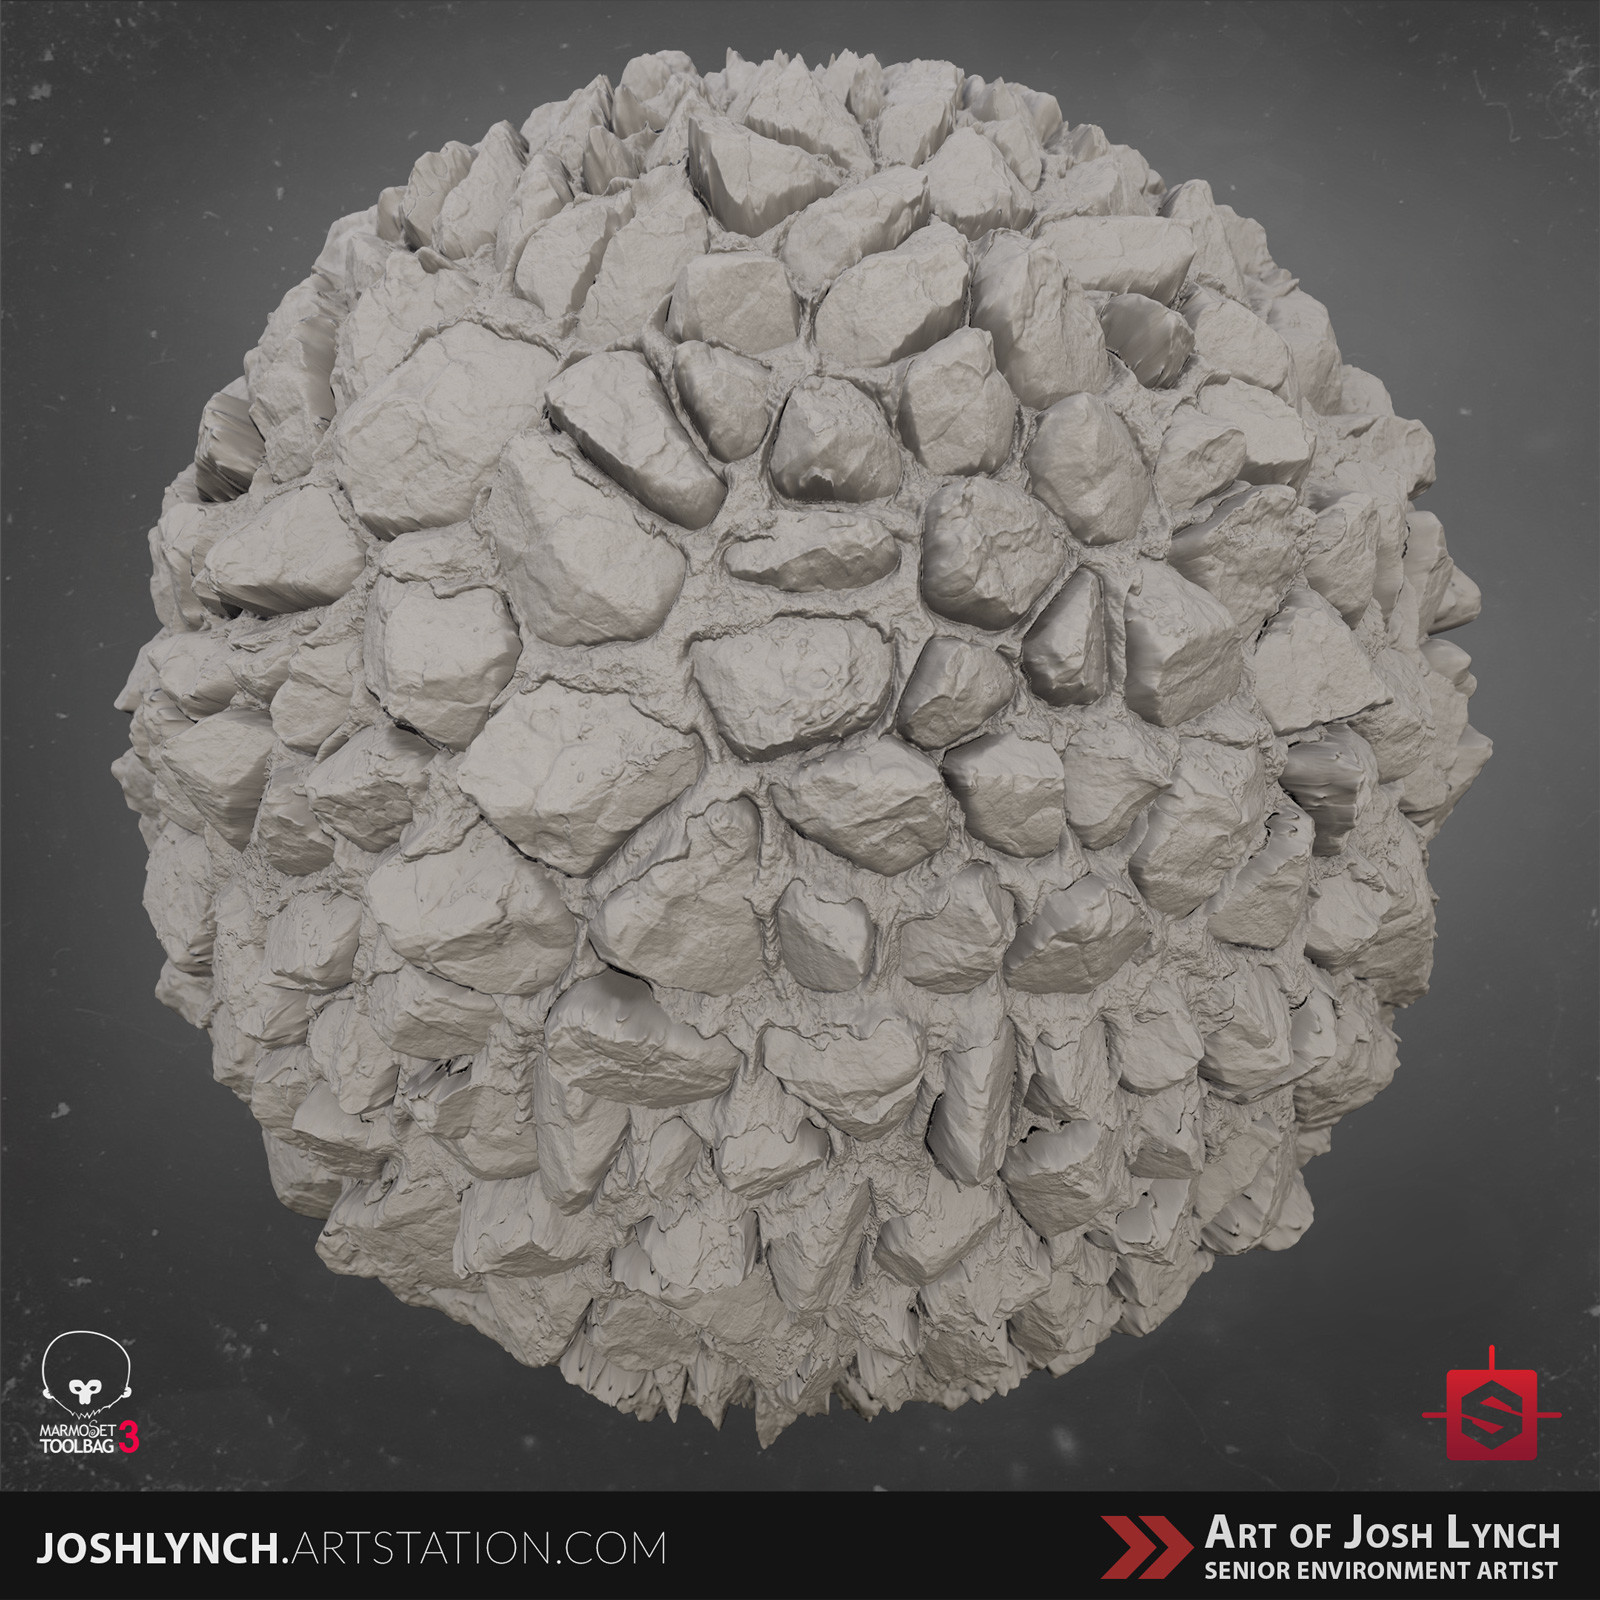 Joshua lynch artstation masterclass layout comp square sphere 02 gray